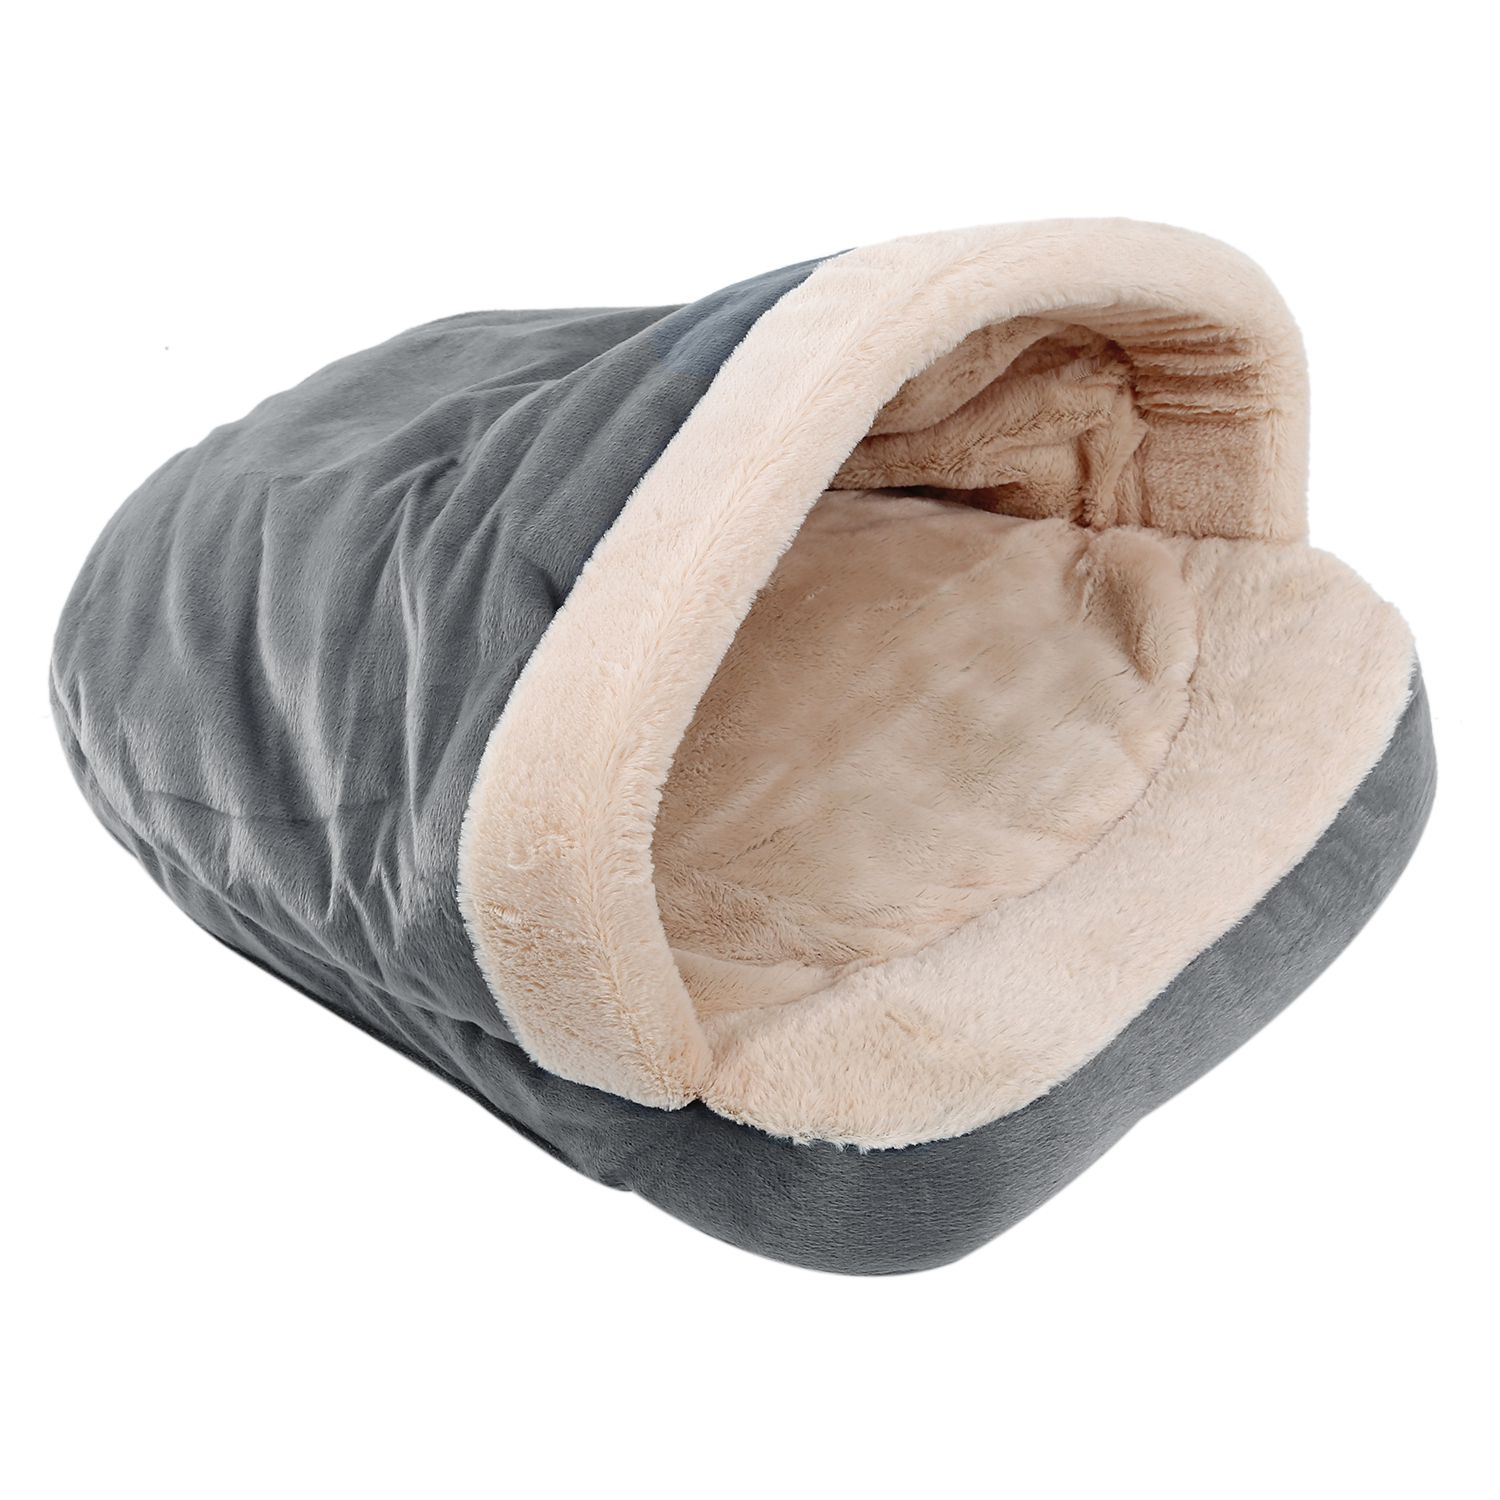 New Pet Soft Dog Cat Bed House Winter Warming Nest Mat For Small Dogs Sleeping Bag Chihuahua Teddy Kennels Free Shipping